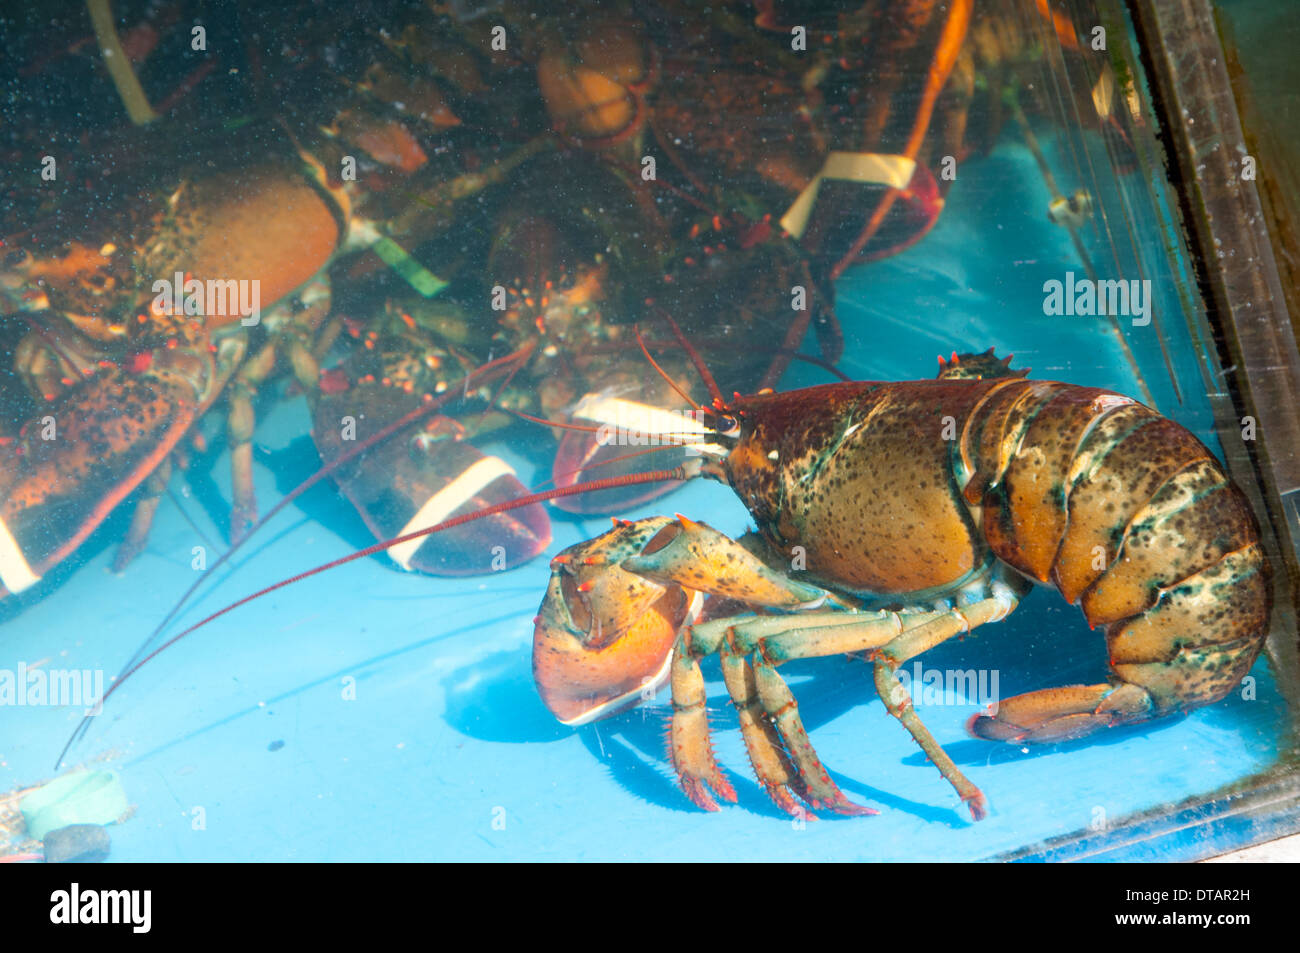 Fresh Lobster in a tank in Chinatown, Manhattan New York City, USA - Stock Image